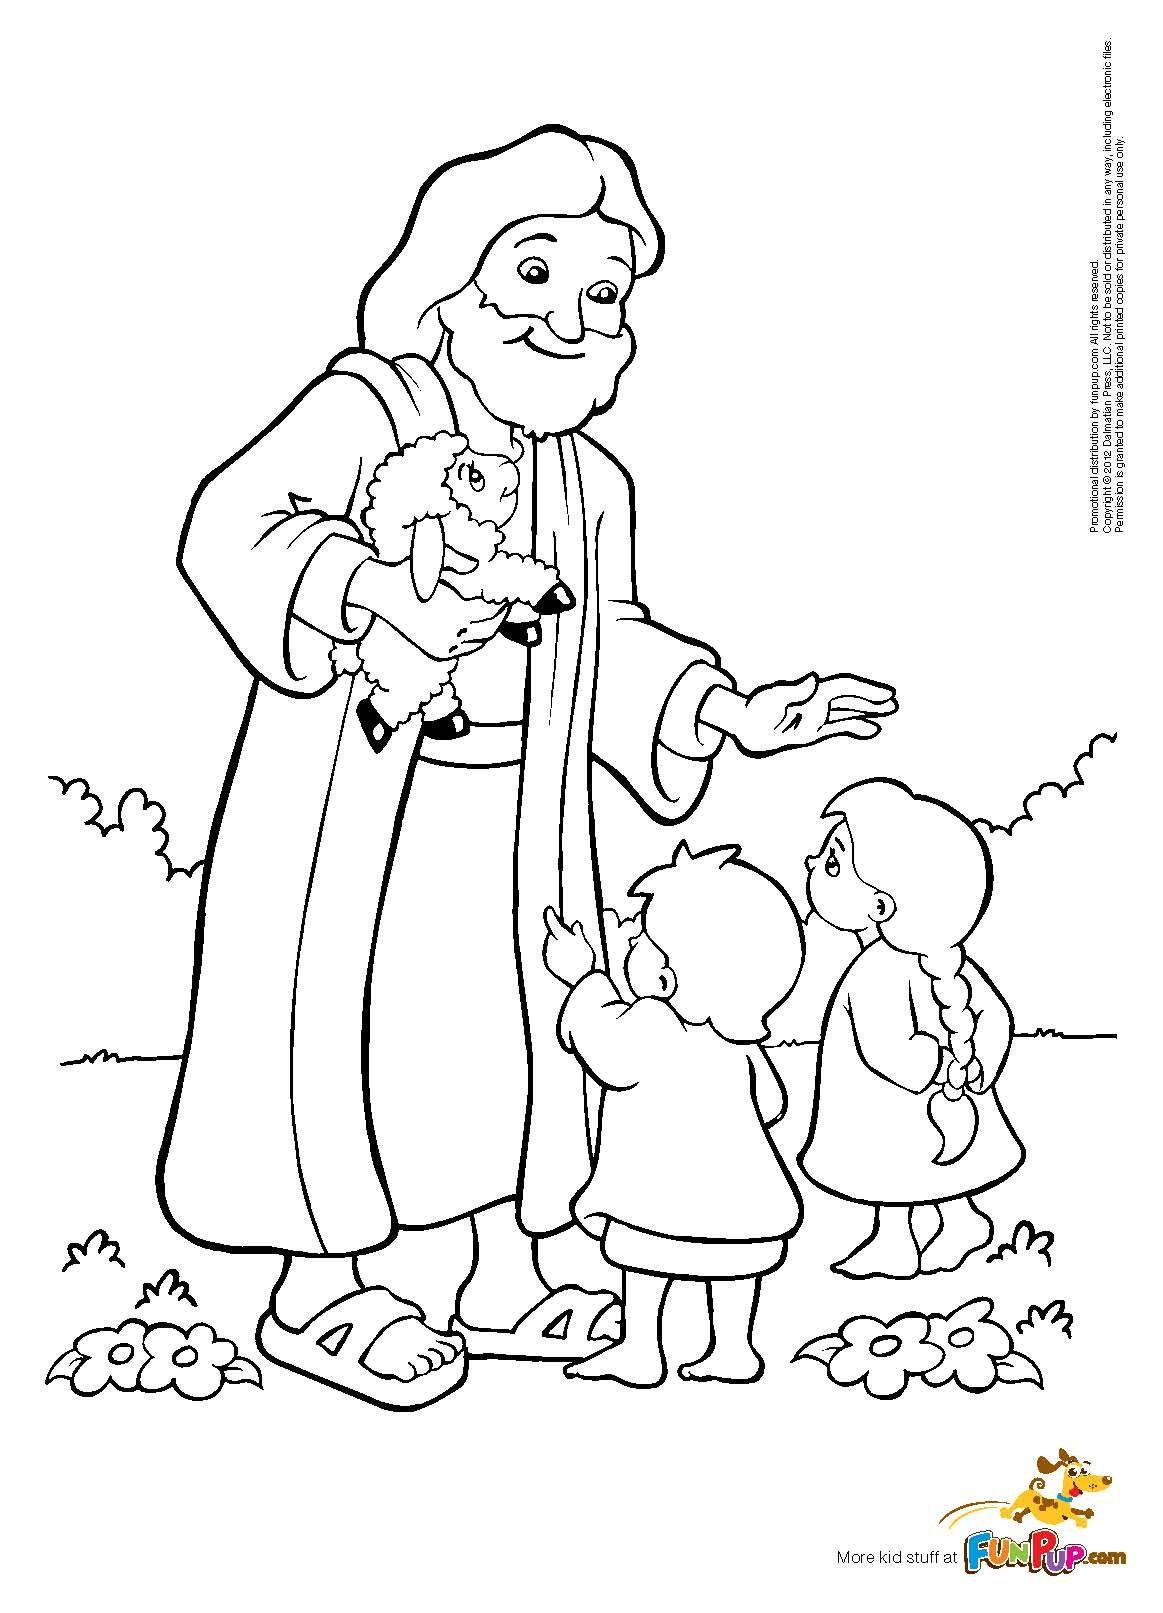 Uncategorized Jesus Coloring Page Printable happy birthday jesus coloring pages 08 kolorowanki religijne free online printable sheets for kids get the latest jesus